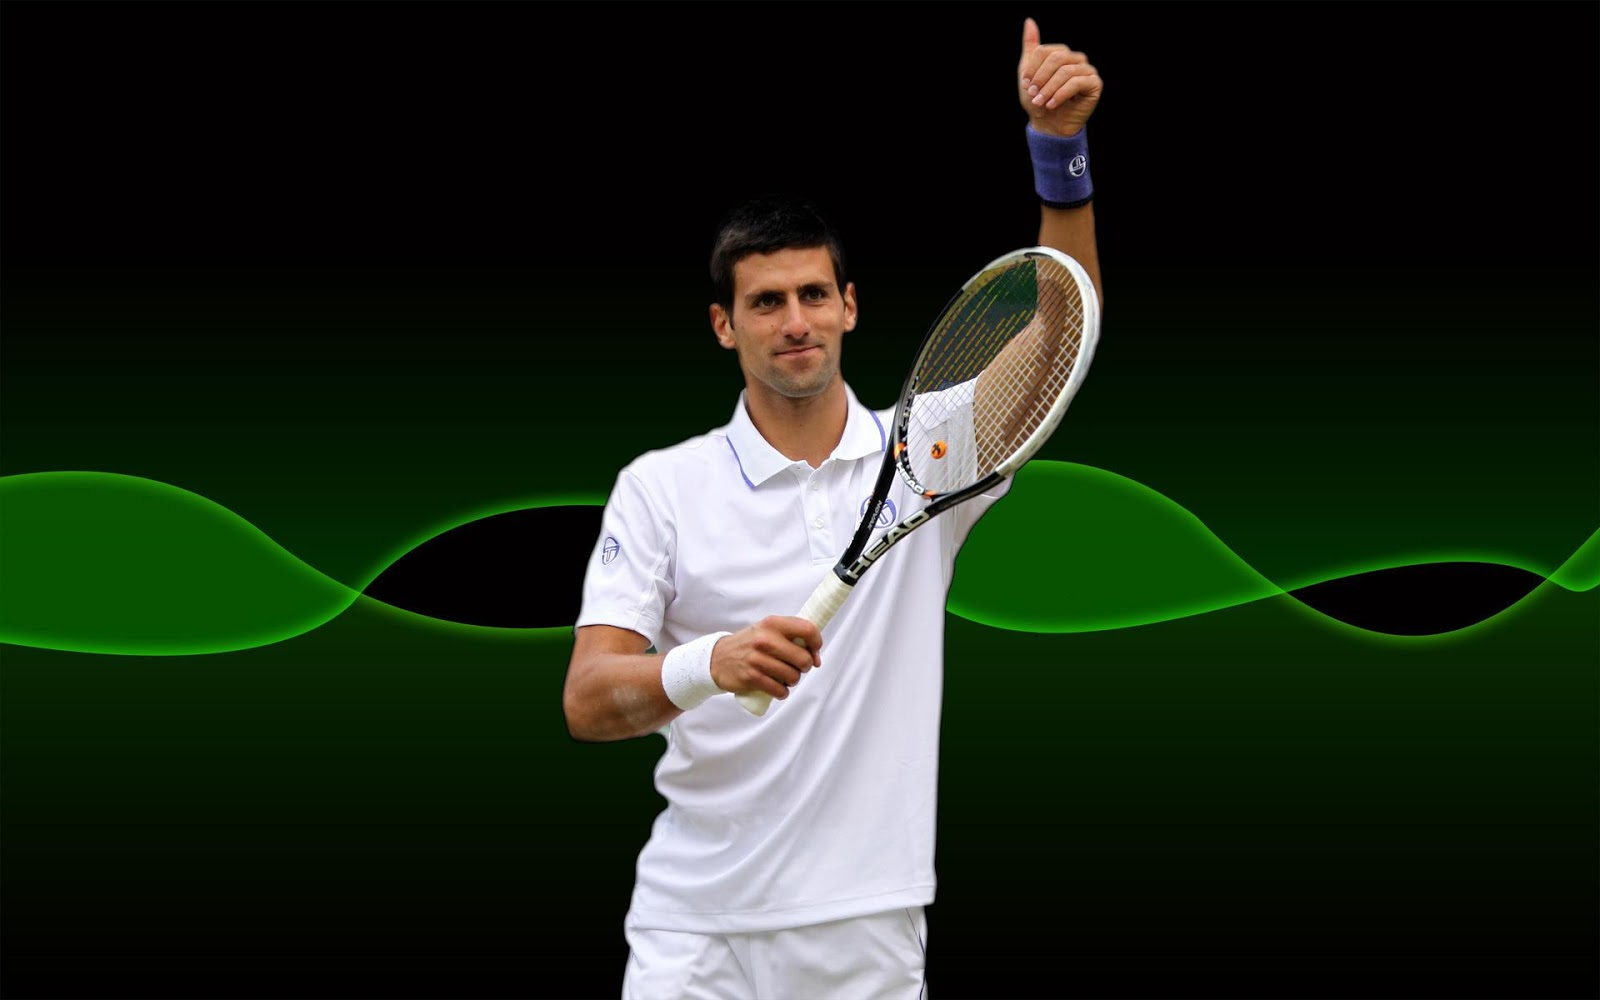 All About Sports Novak Djokovic Profile Pictures And Wallpapers 1600x1000